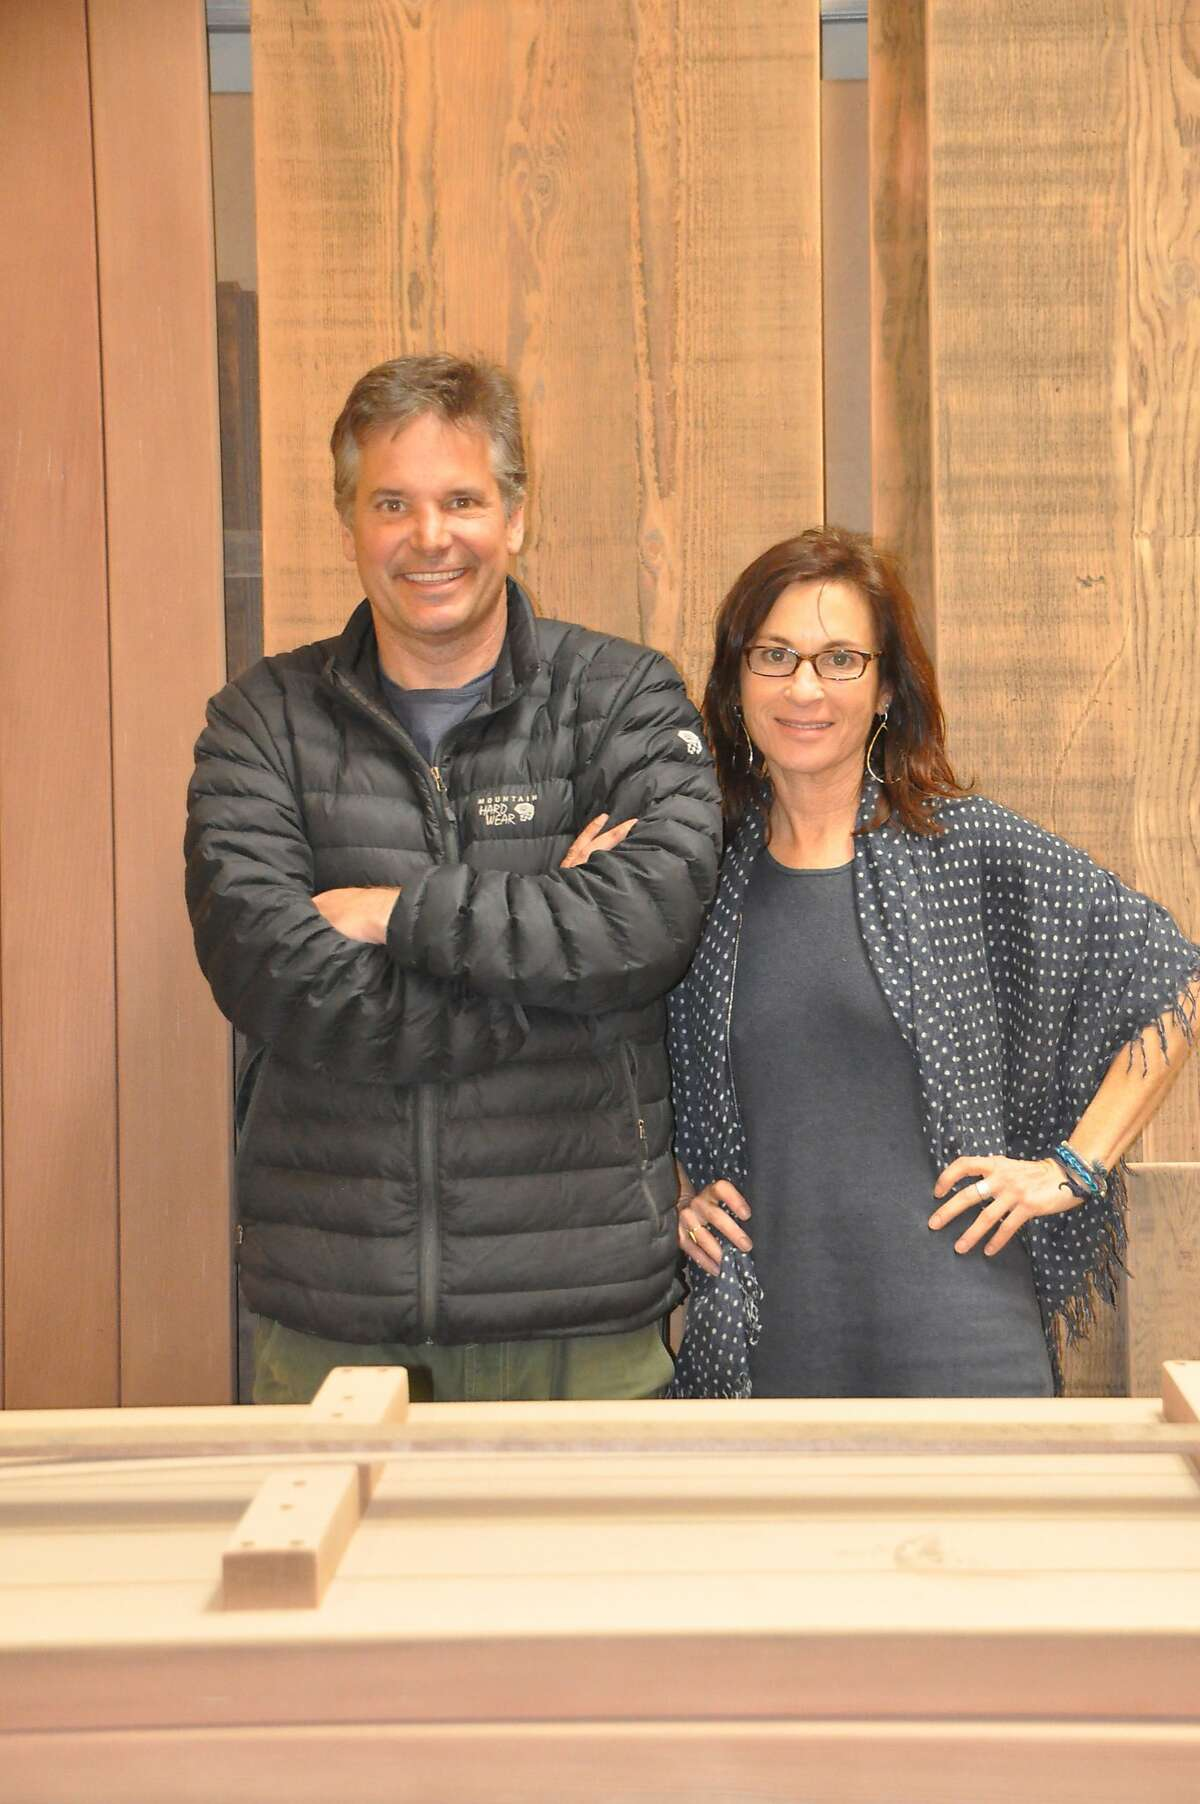 Eric Gellerman and Amy Ferber, owners of the Wooden Duck.